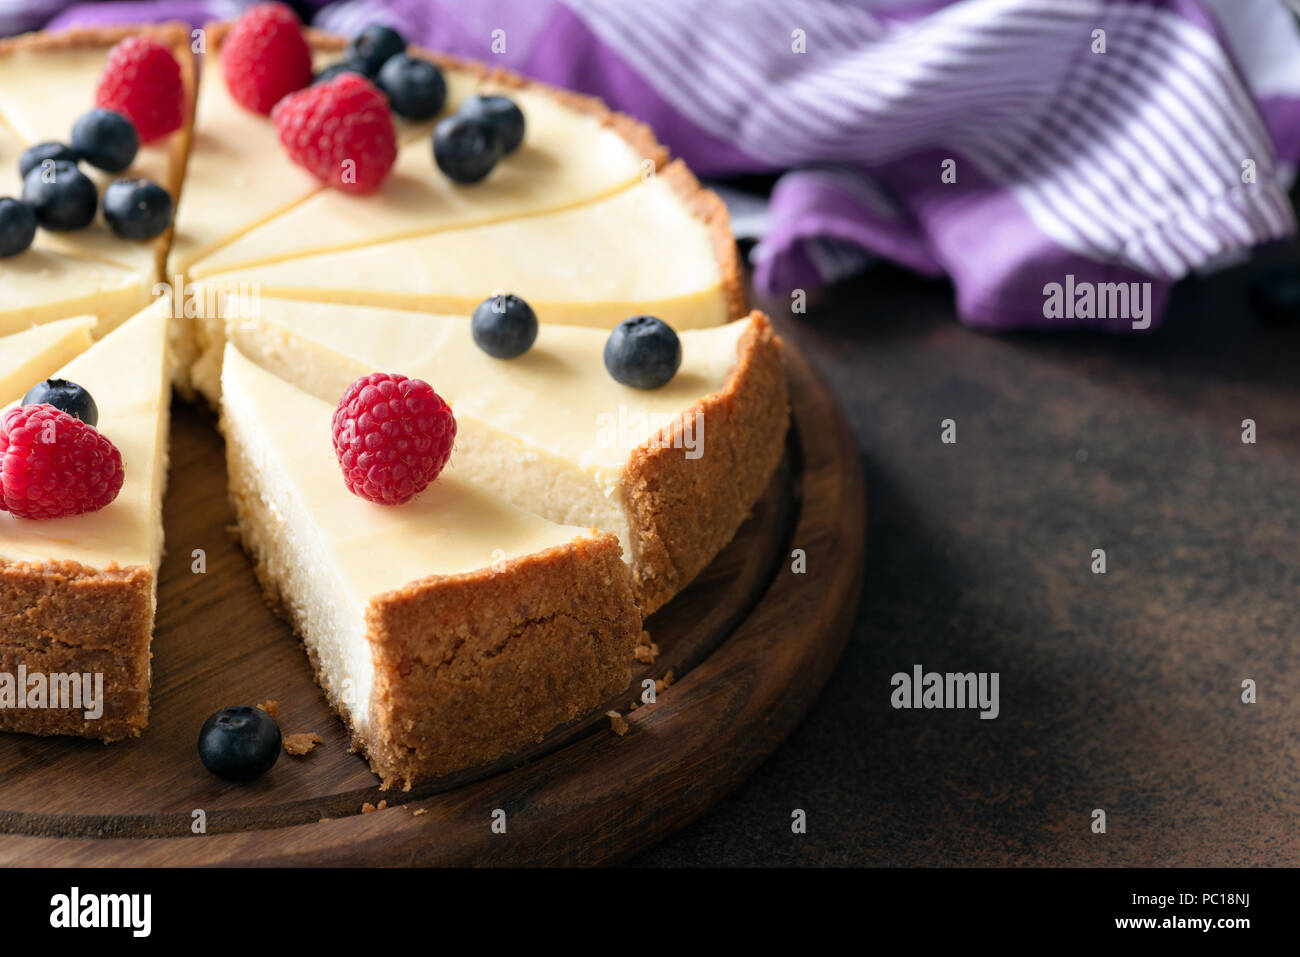 Classic plain New York Cheesecake with fresh berries sliced on wooden board, closeup view, selective focus - Stock Image